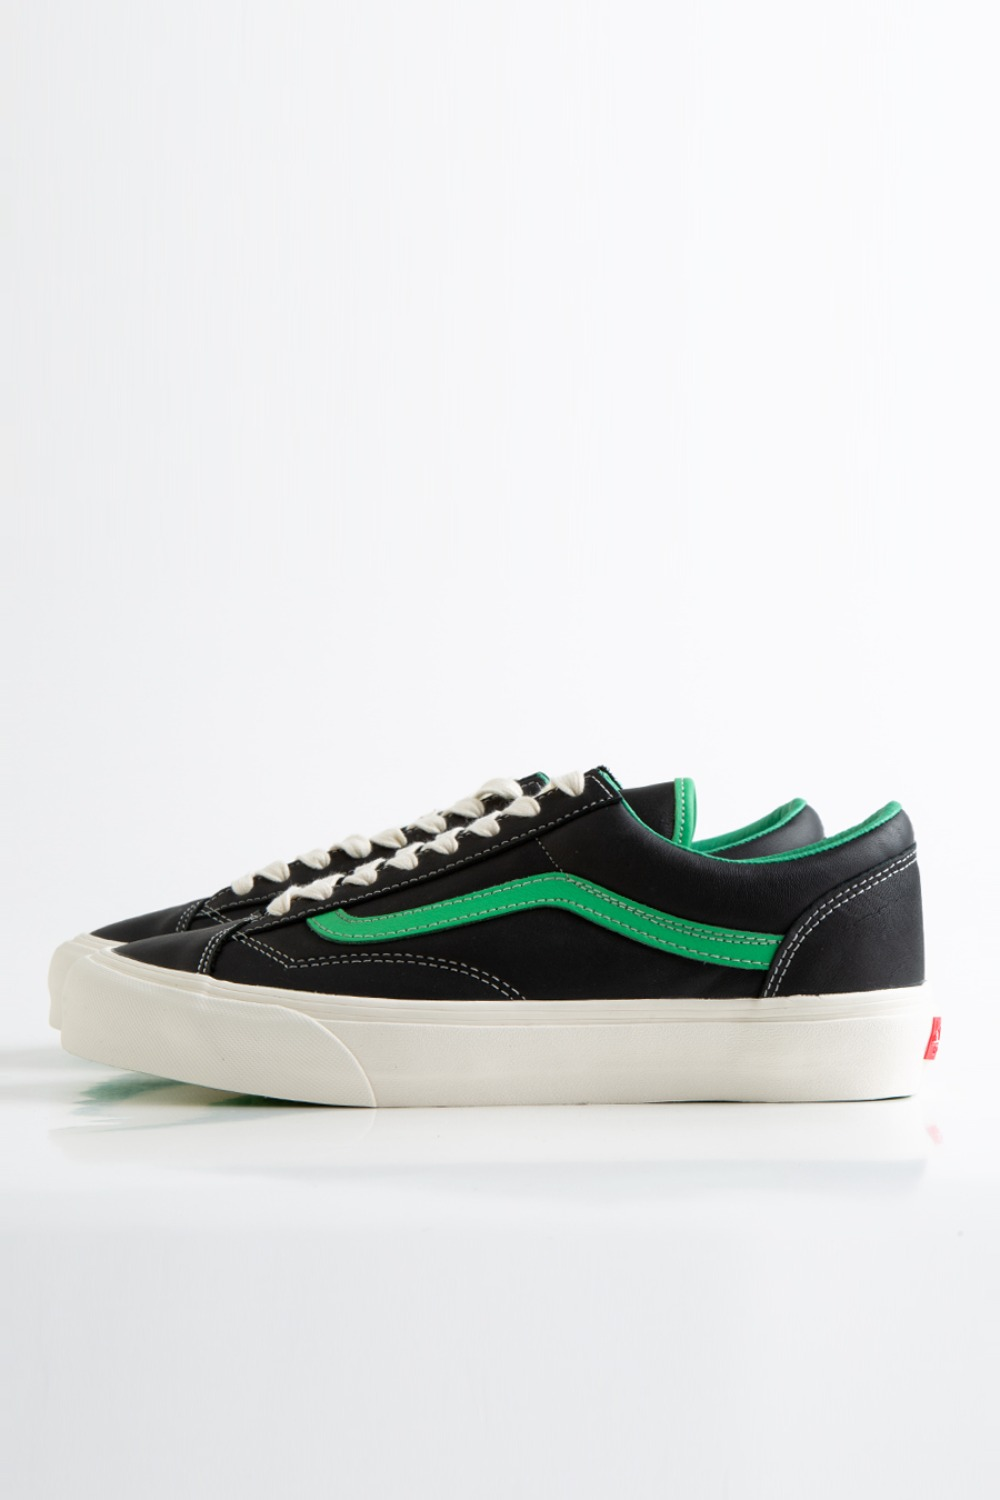 STYLE 36 VLT LX(LEATHER) BLACK/ISLAND GREEN